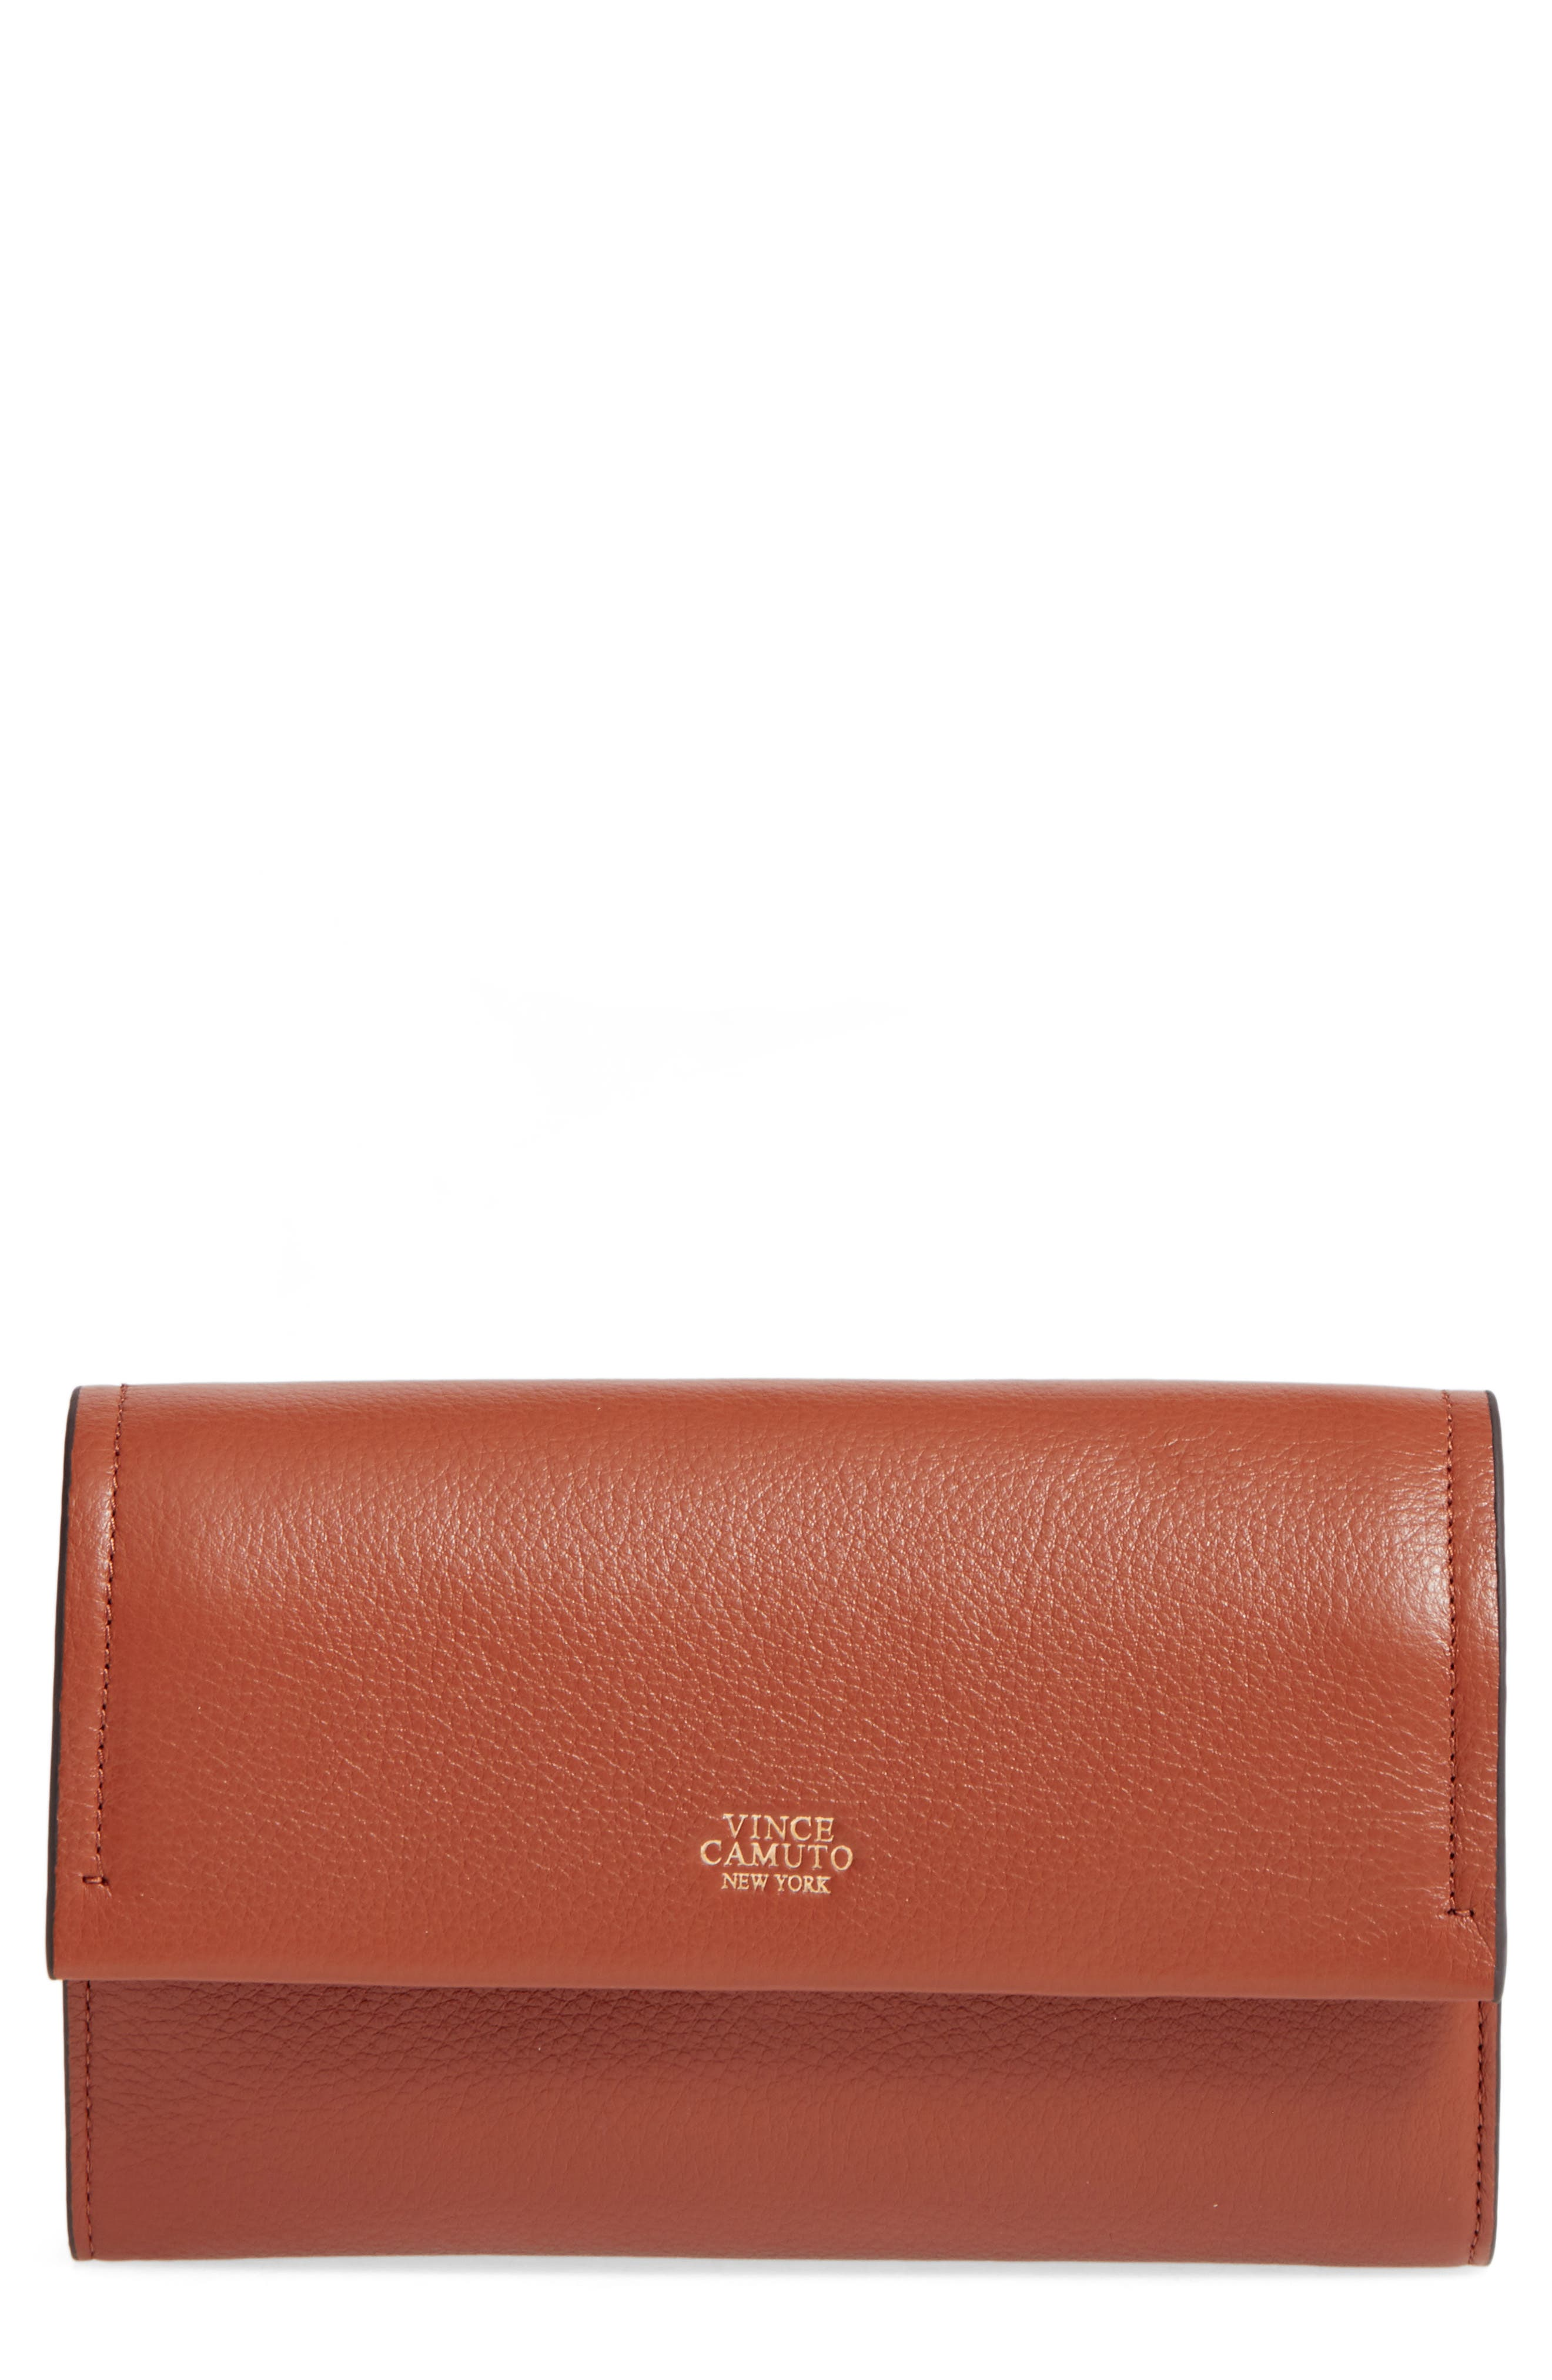 Vince Camuto Zosia Leather Crossbody Wallet